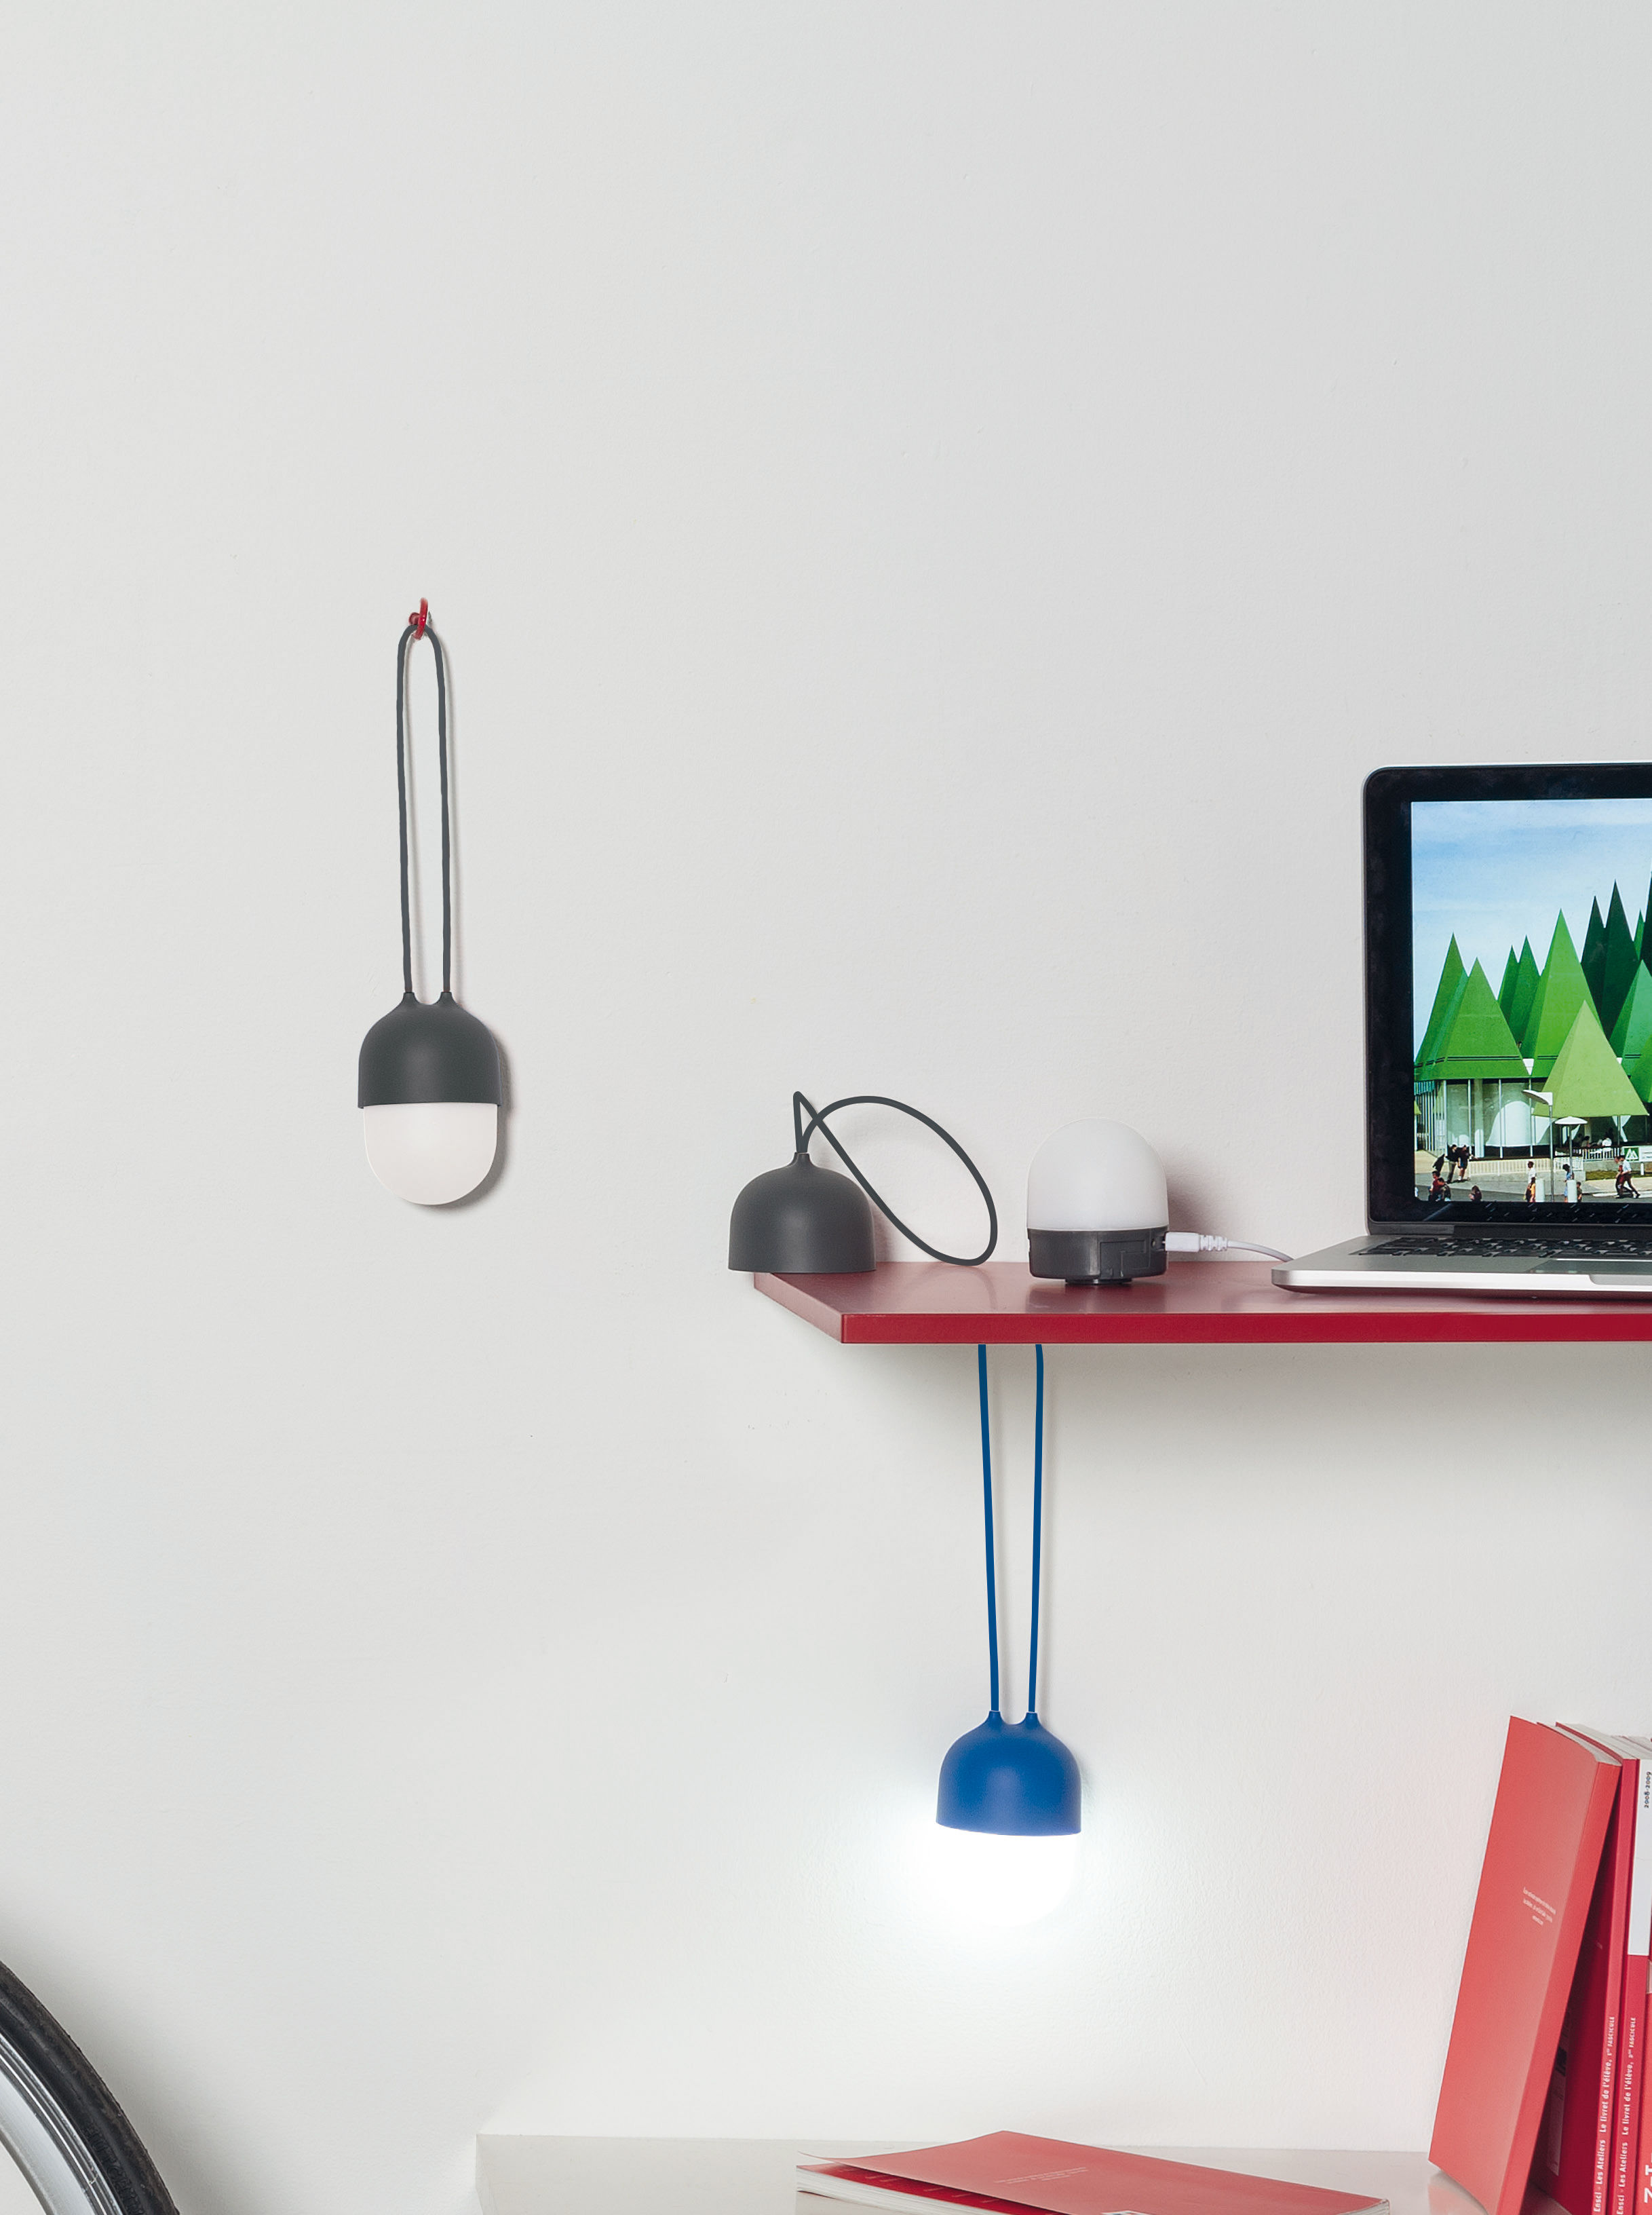 clover lampe ohne kabel tragbare led lampe blau by lexon made in design. Black Bedroom Furniture Sets. Home Design Ideas